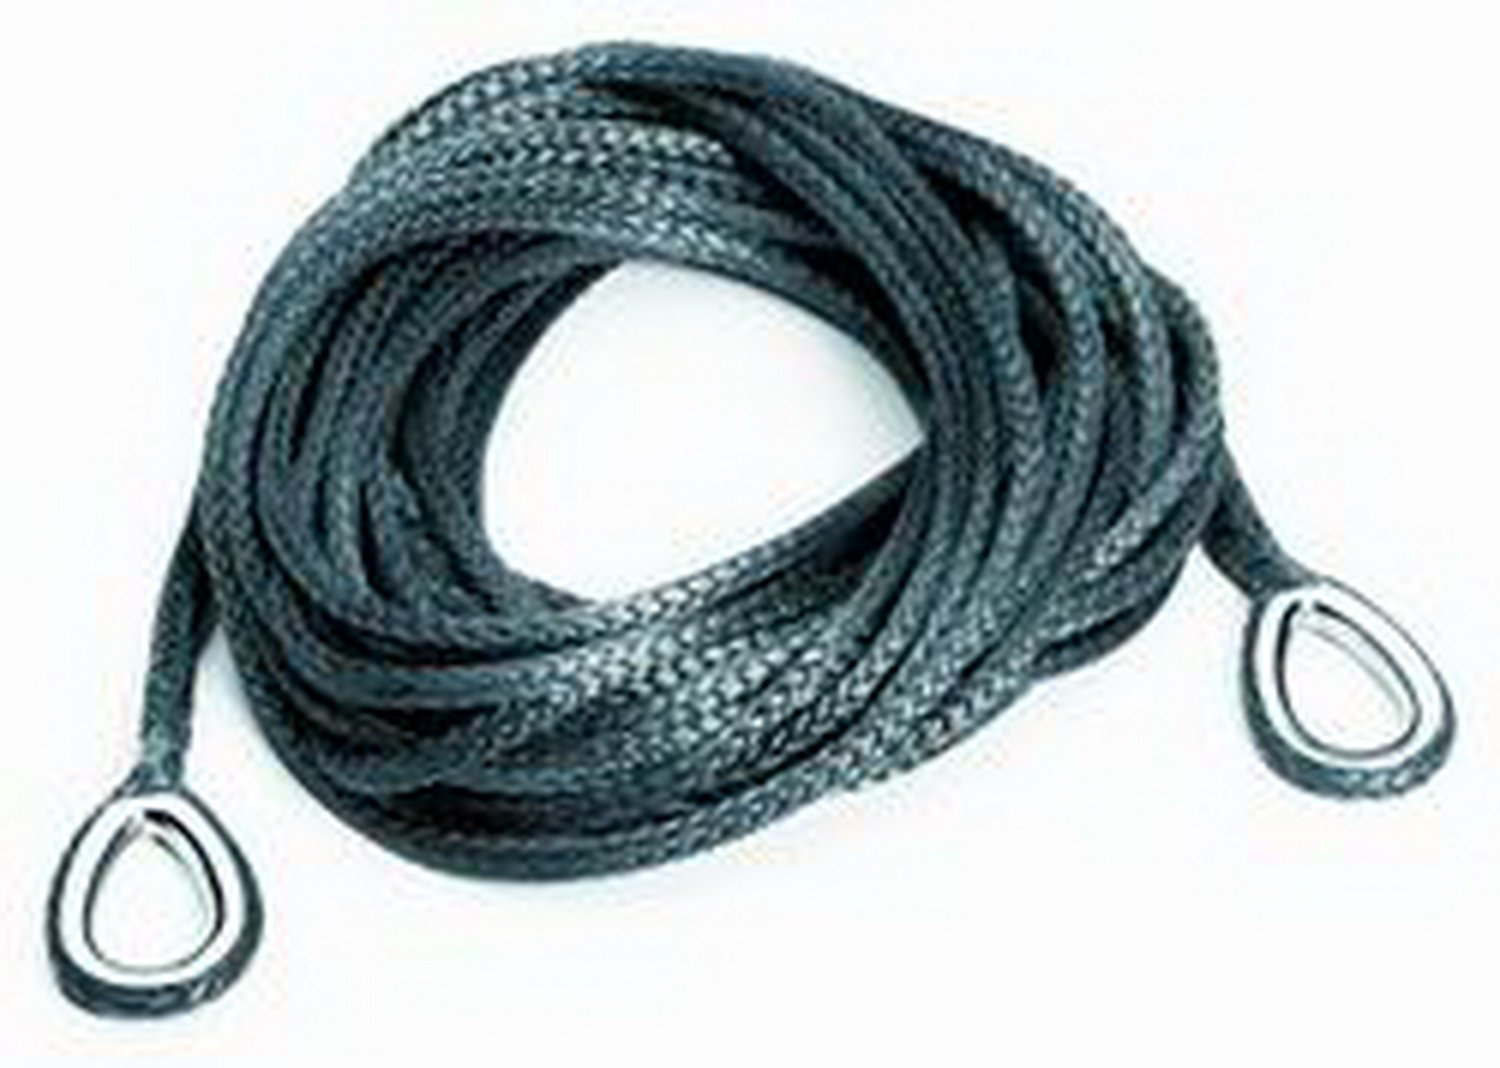 WARN 69069 ATV Synthetic Rope Extension